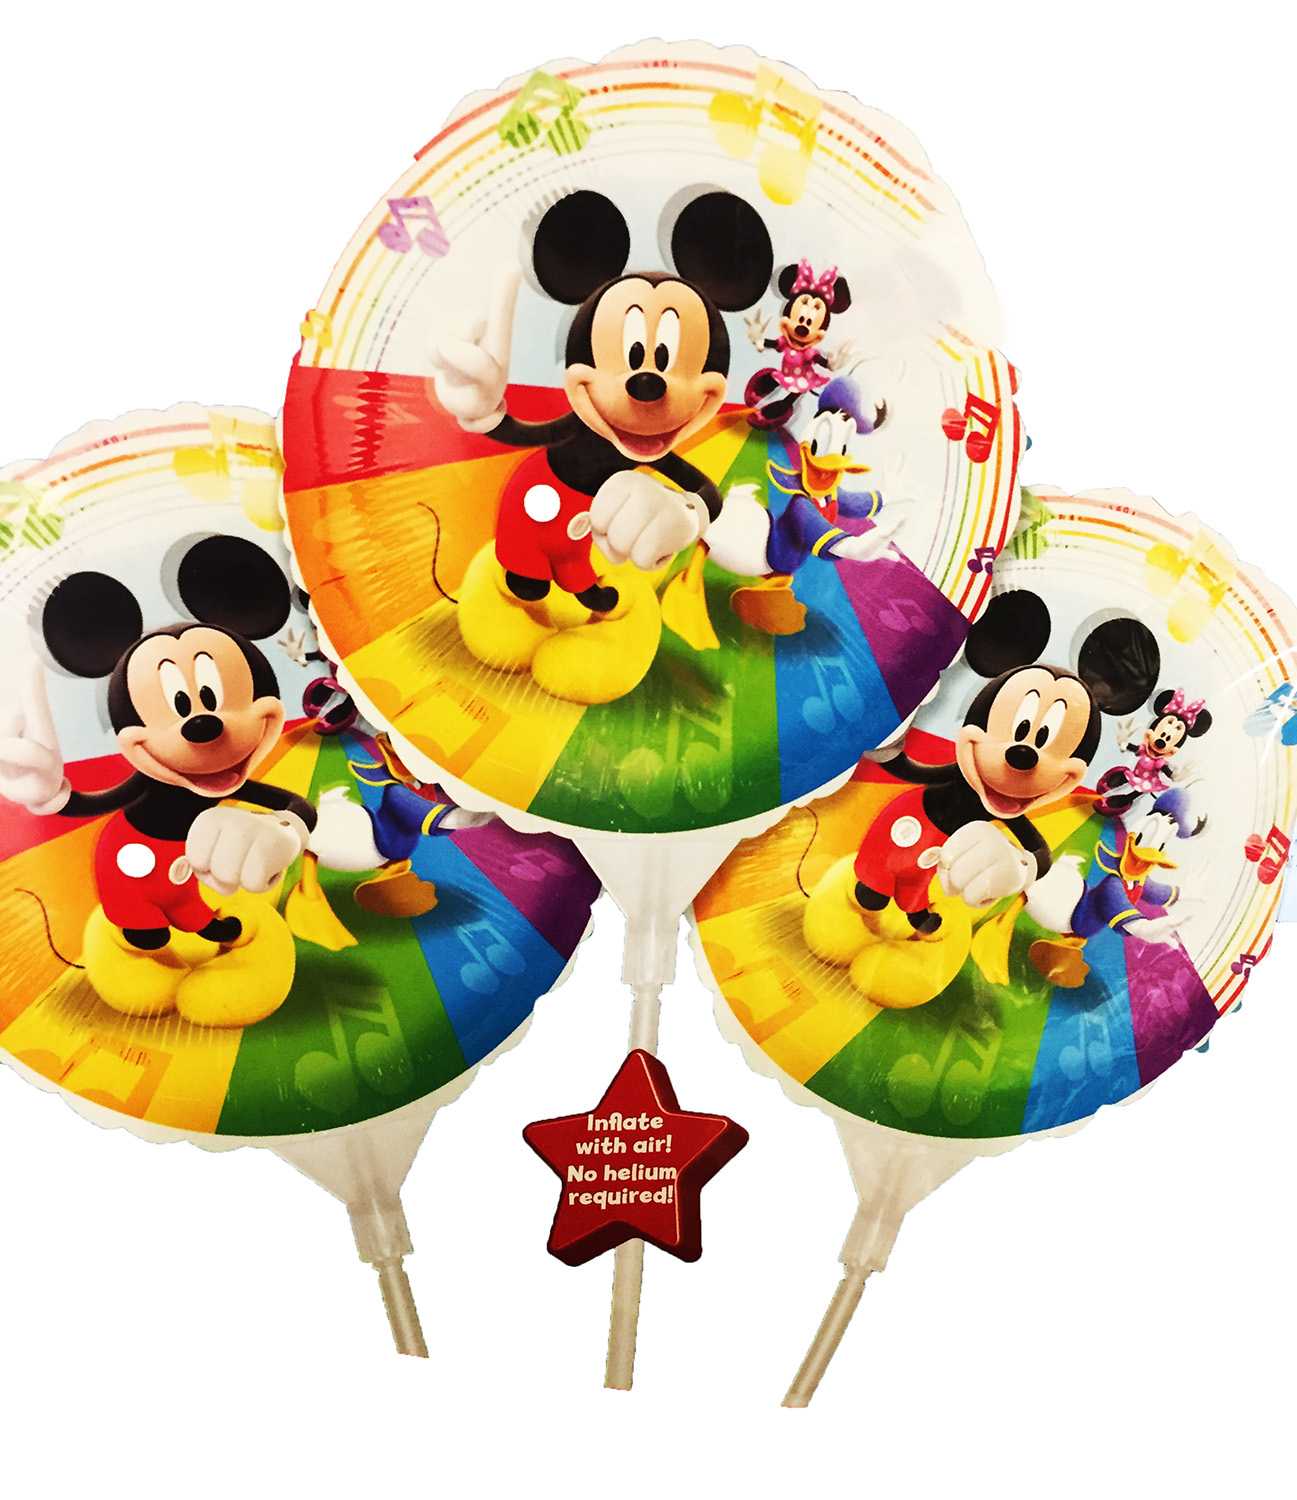 3 mini ballon mIckey